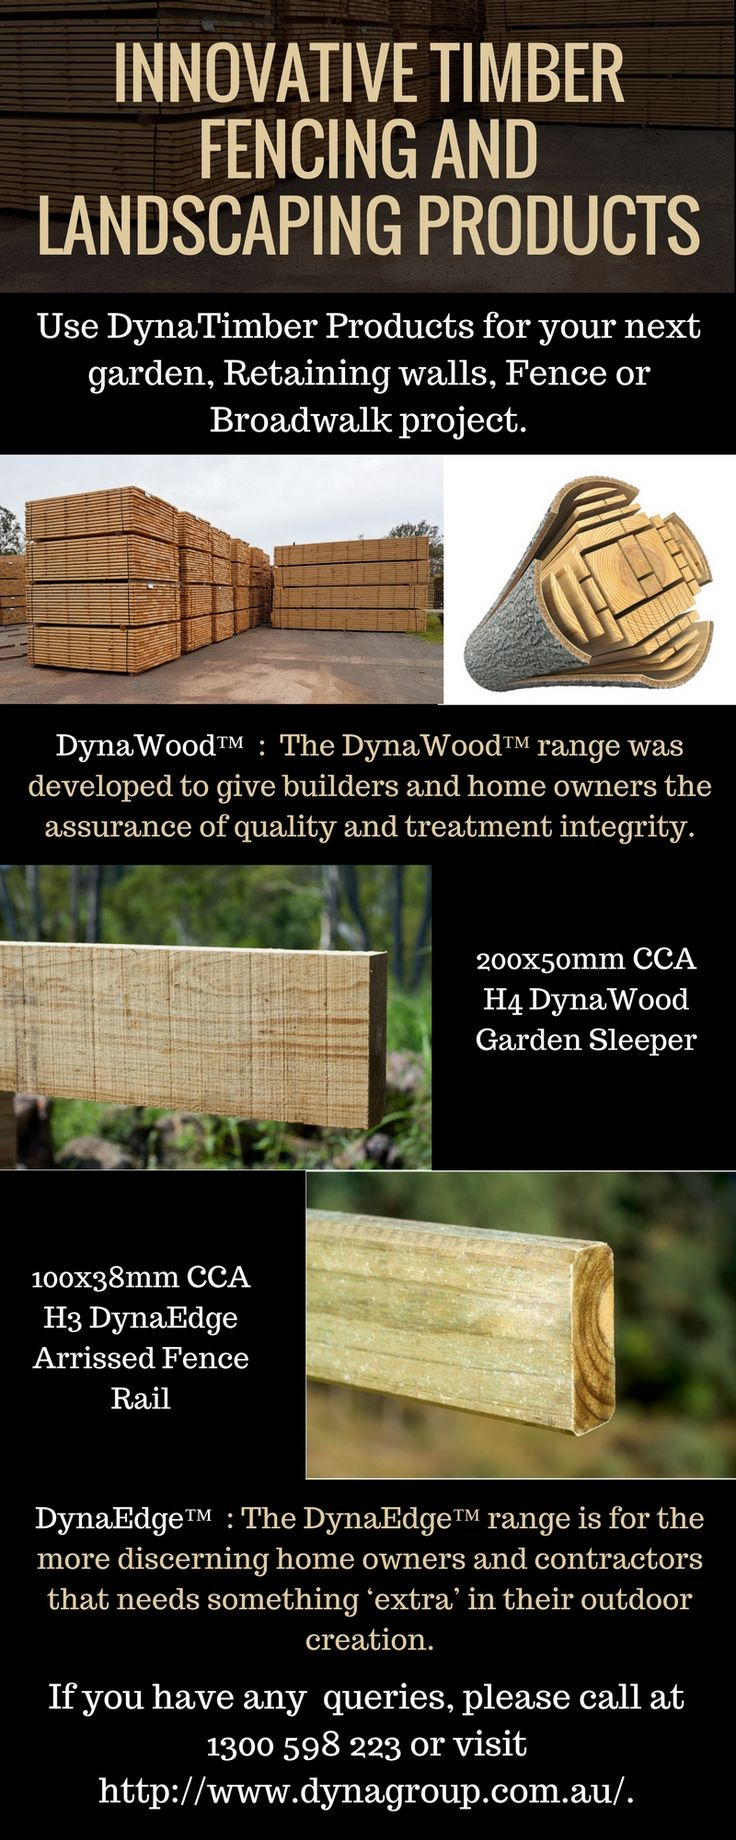 DynaTimber manufacturers have a wide range of timber products from a diverse selection of indigenous Australian Timber Sleepers including DynaEdge™ Sleepers and DynaWood™ Sleepers.